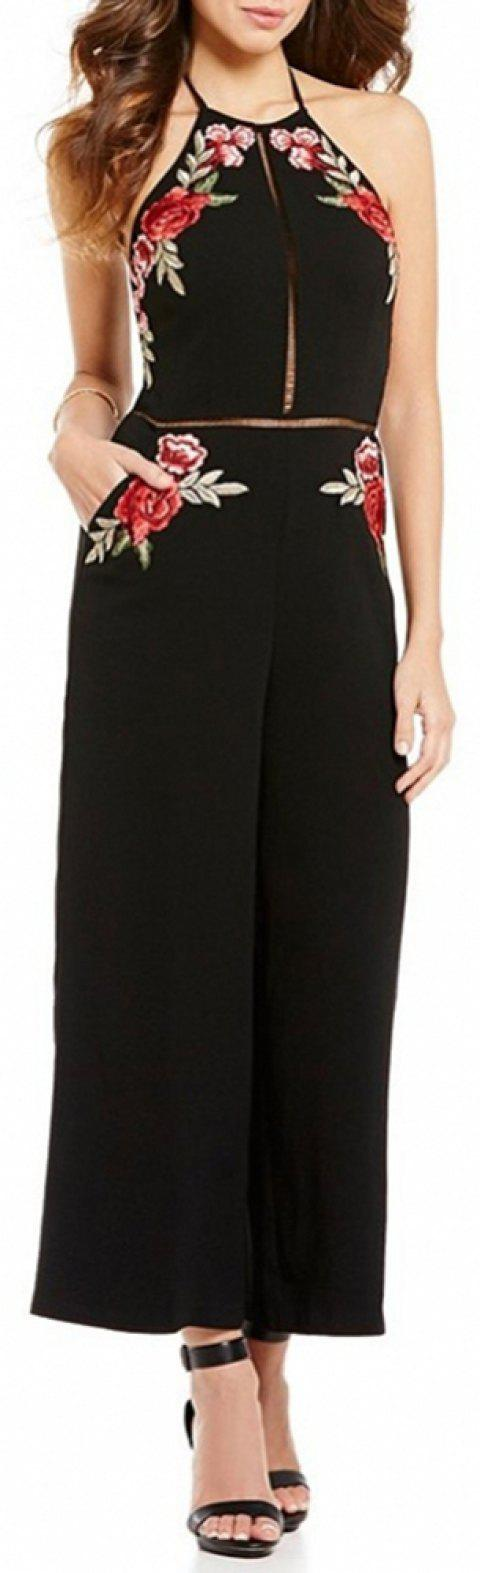 Women's Sexy Backless Halter Cut Out Embroidery Floral Wide Leg Jumpsuit - BLACK M